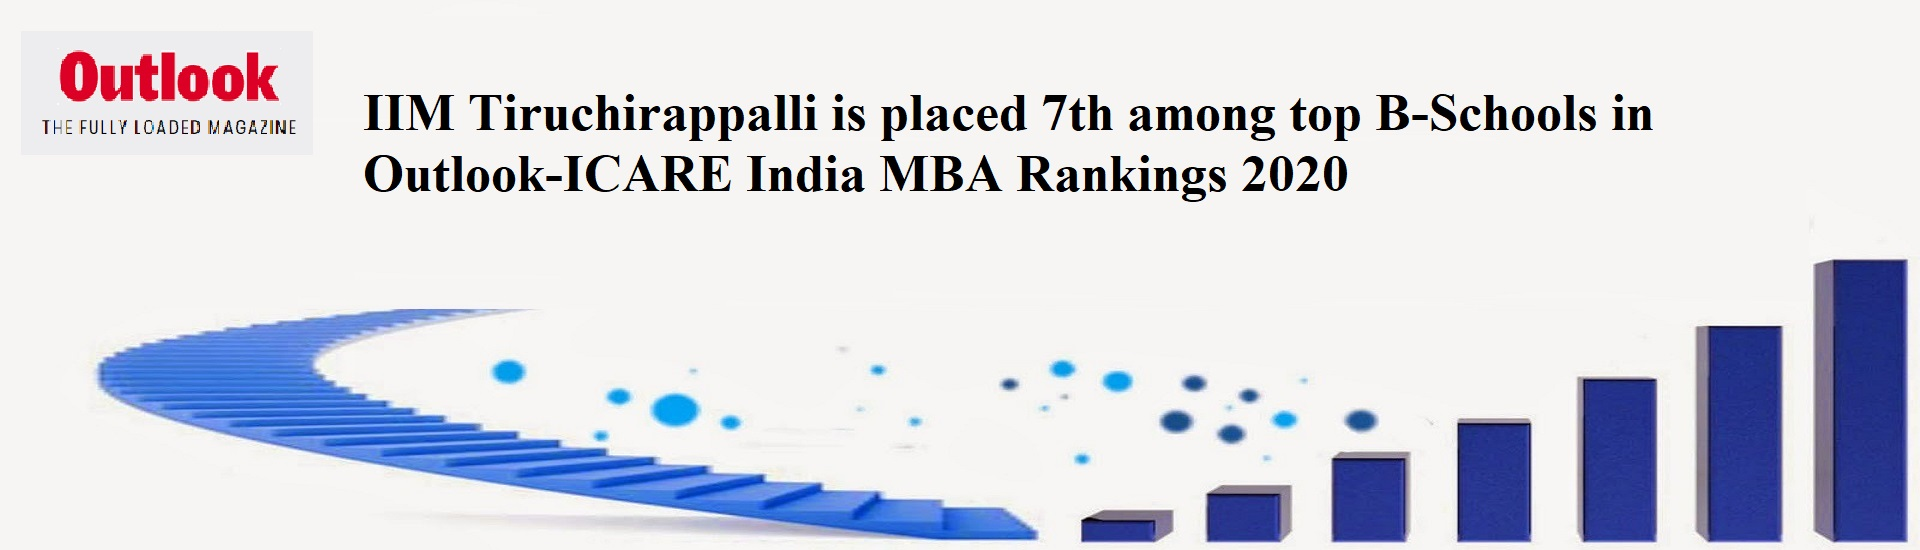 IIM Tiruchirappalli is placed 7th among top B-Schools in Outlook-ICARE India MBA Rankings 2020